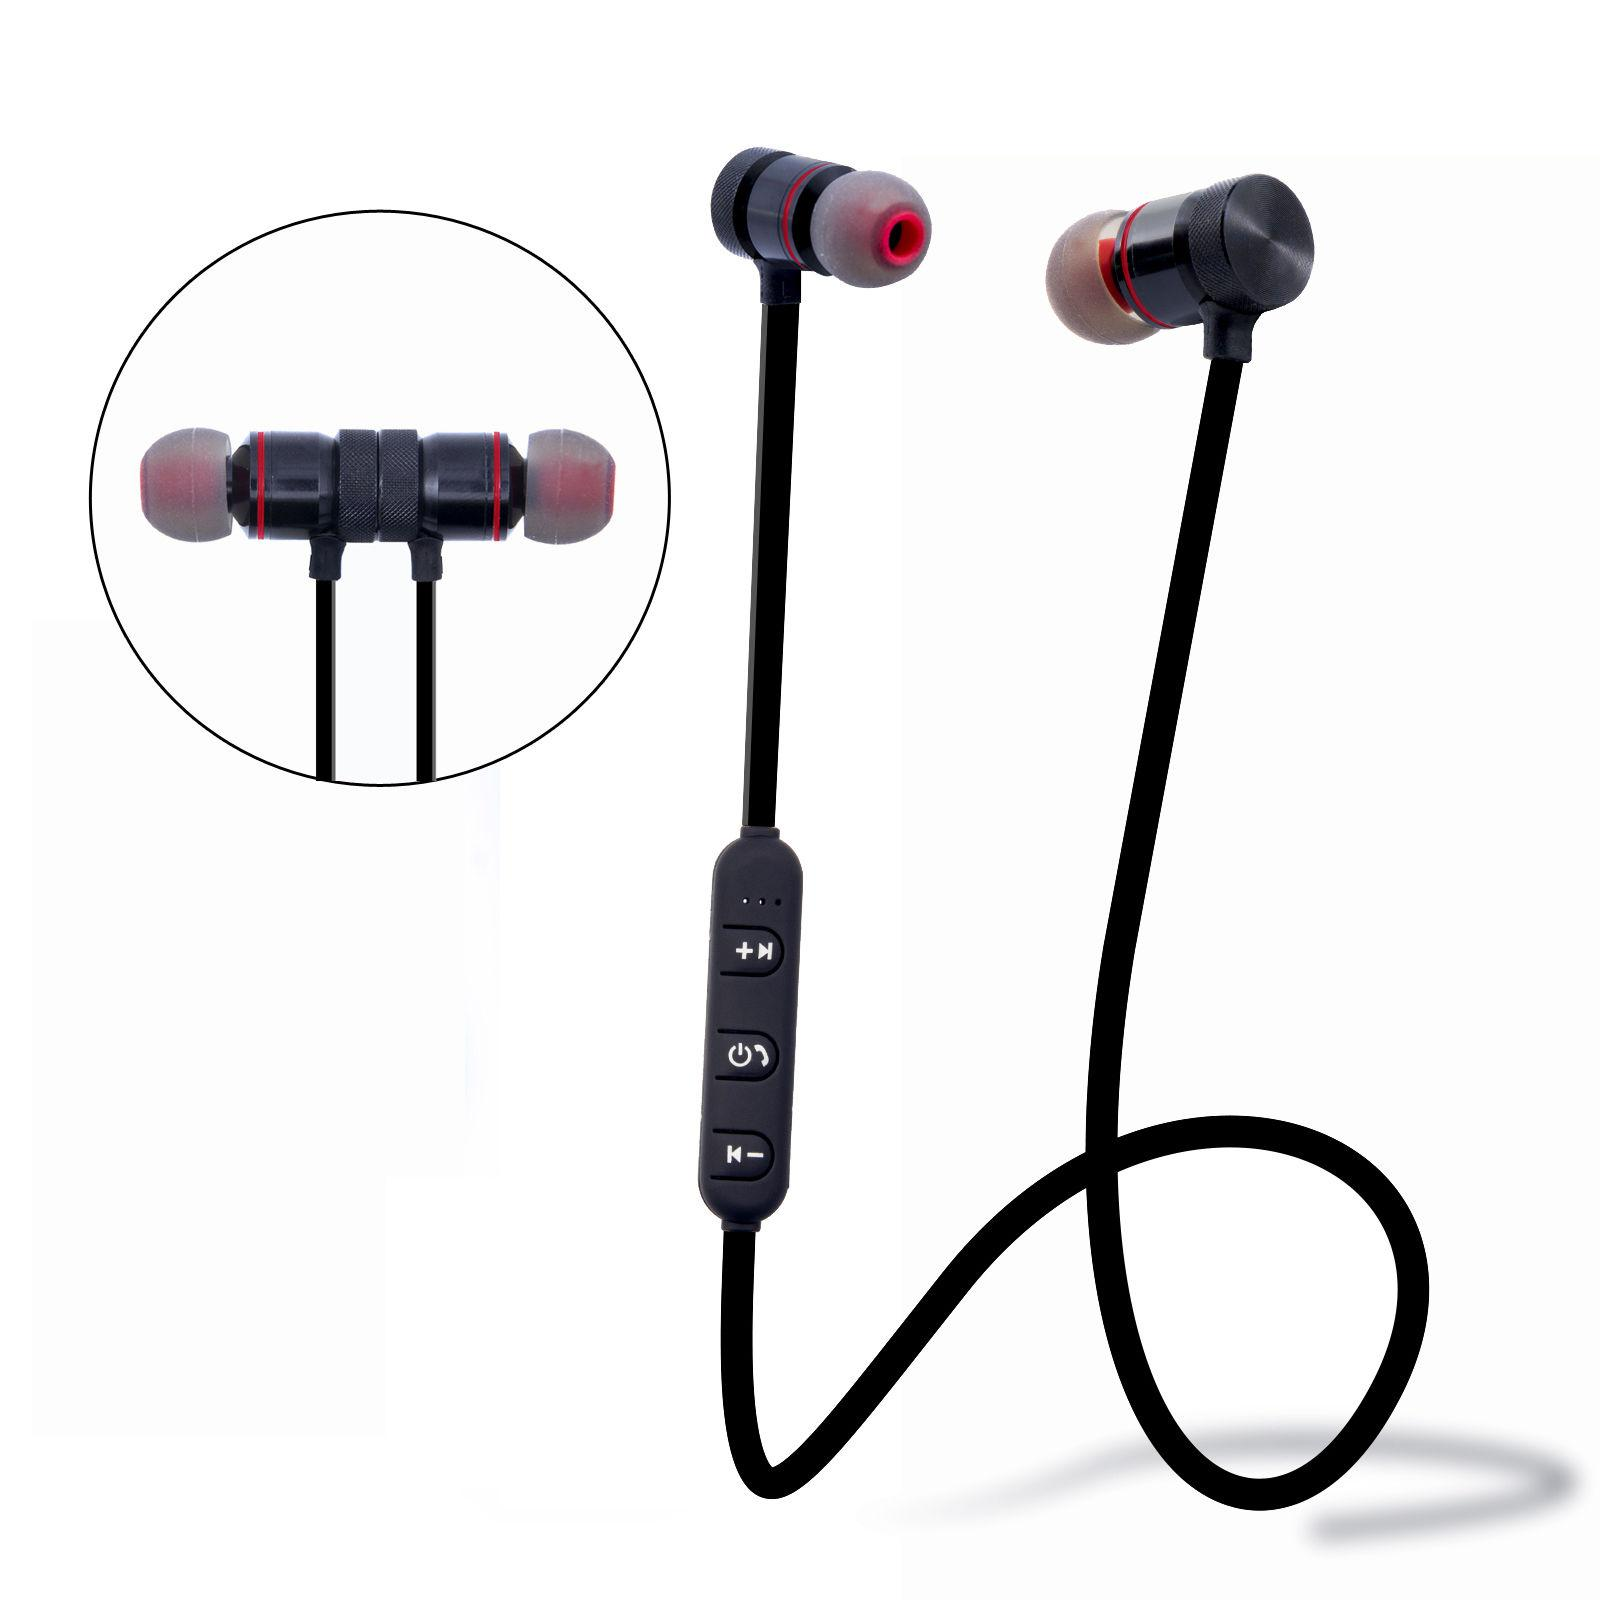 Bluetooth Auricolari Cuffie Magnetic Stereo Headset With Mic For Smartphone  M102 Bluetooth Magnetic Mini Wireless Sport For Game Player Wireless  Headset For ... 50db9da852b2